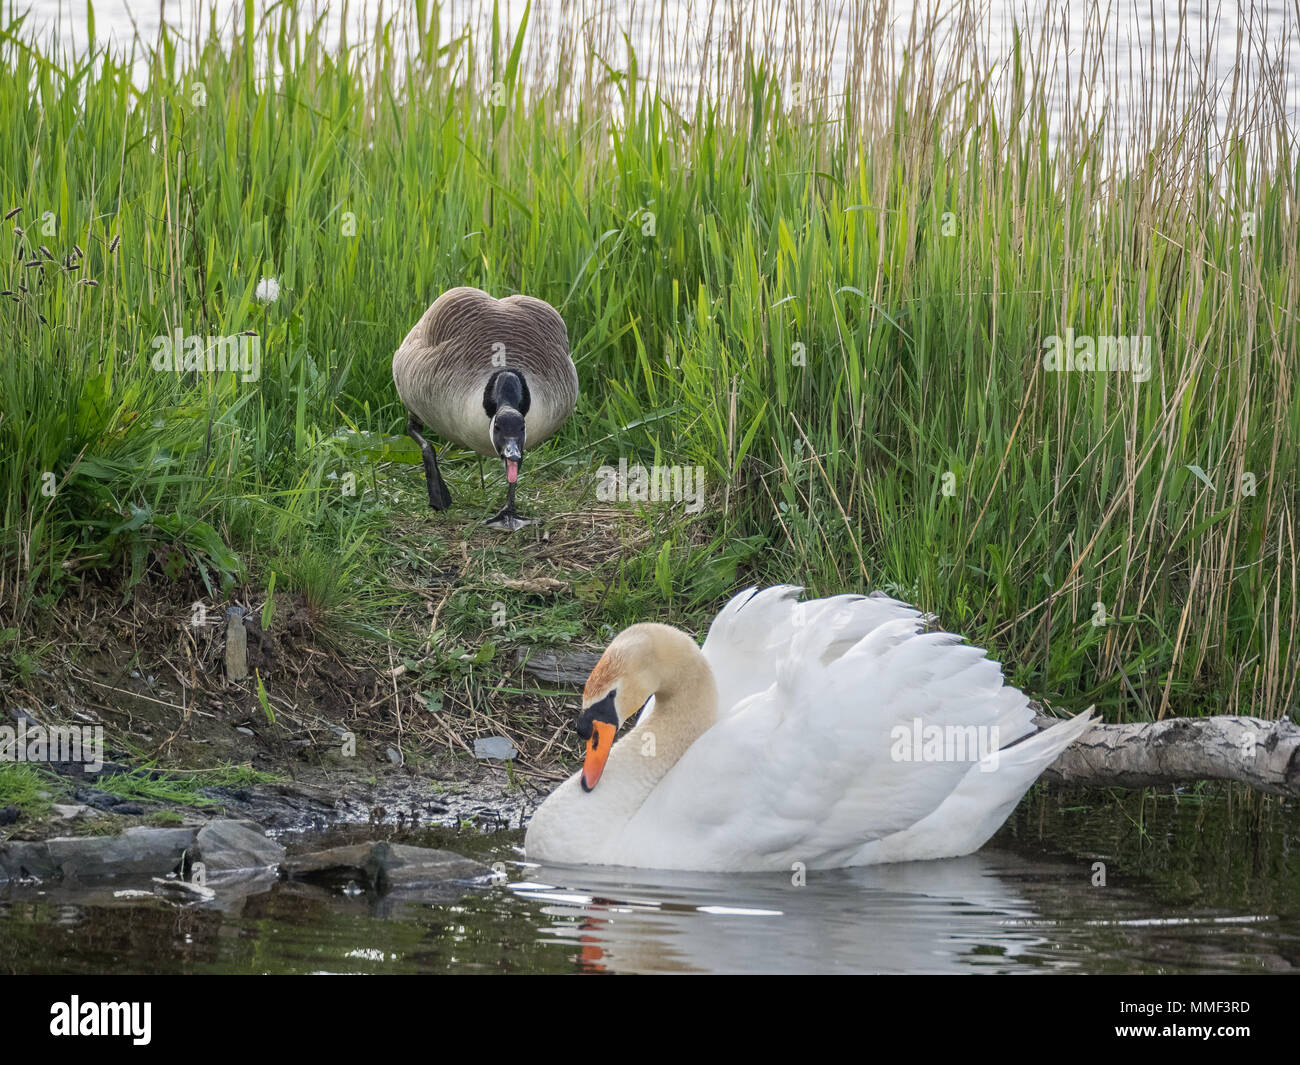 Canada Goose defending territory from Swan, Teifi Marshes, Cardigan, Wales Stock Photo